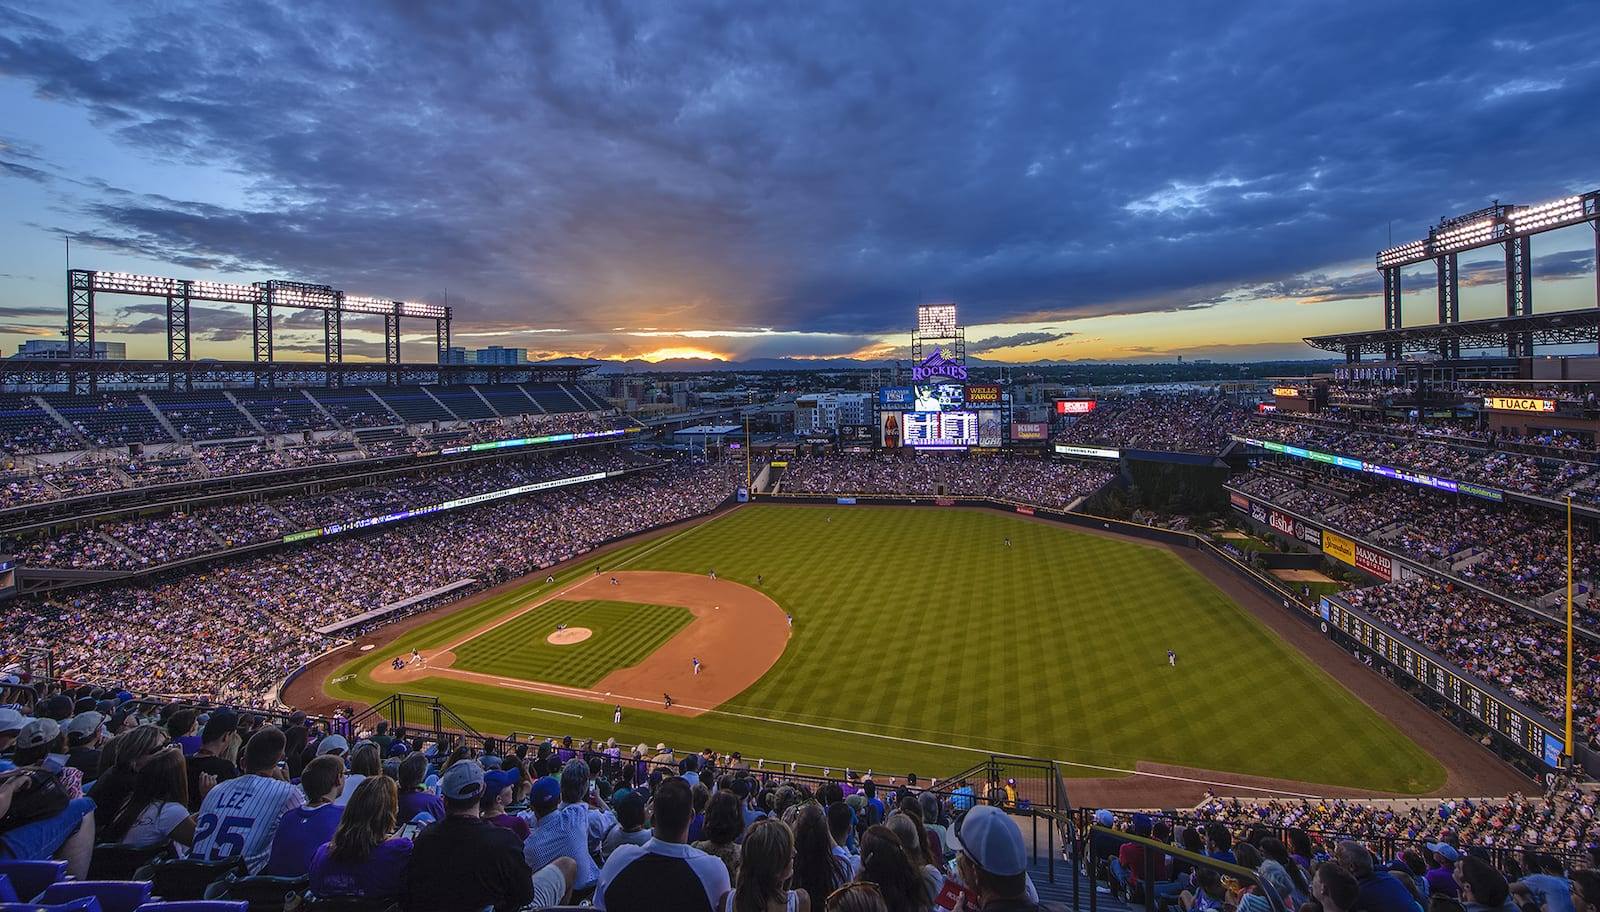 Coors Field Sunset, CO